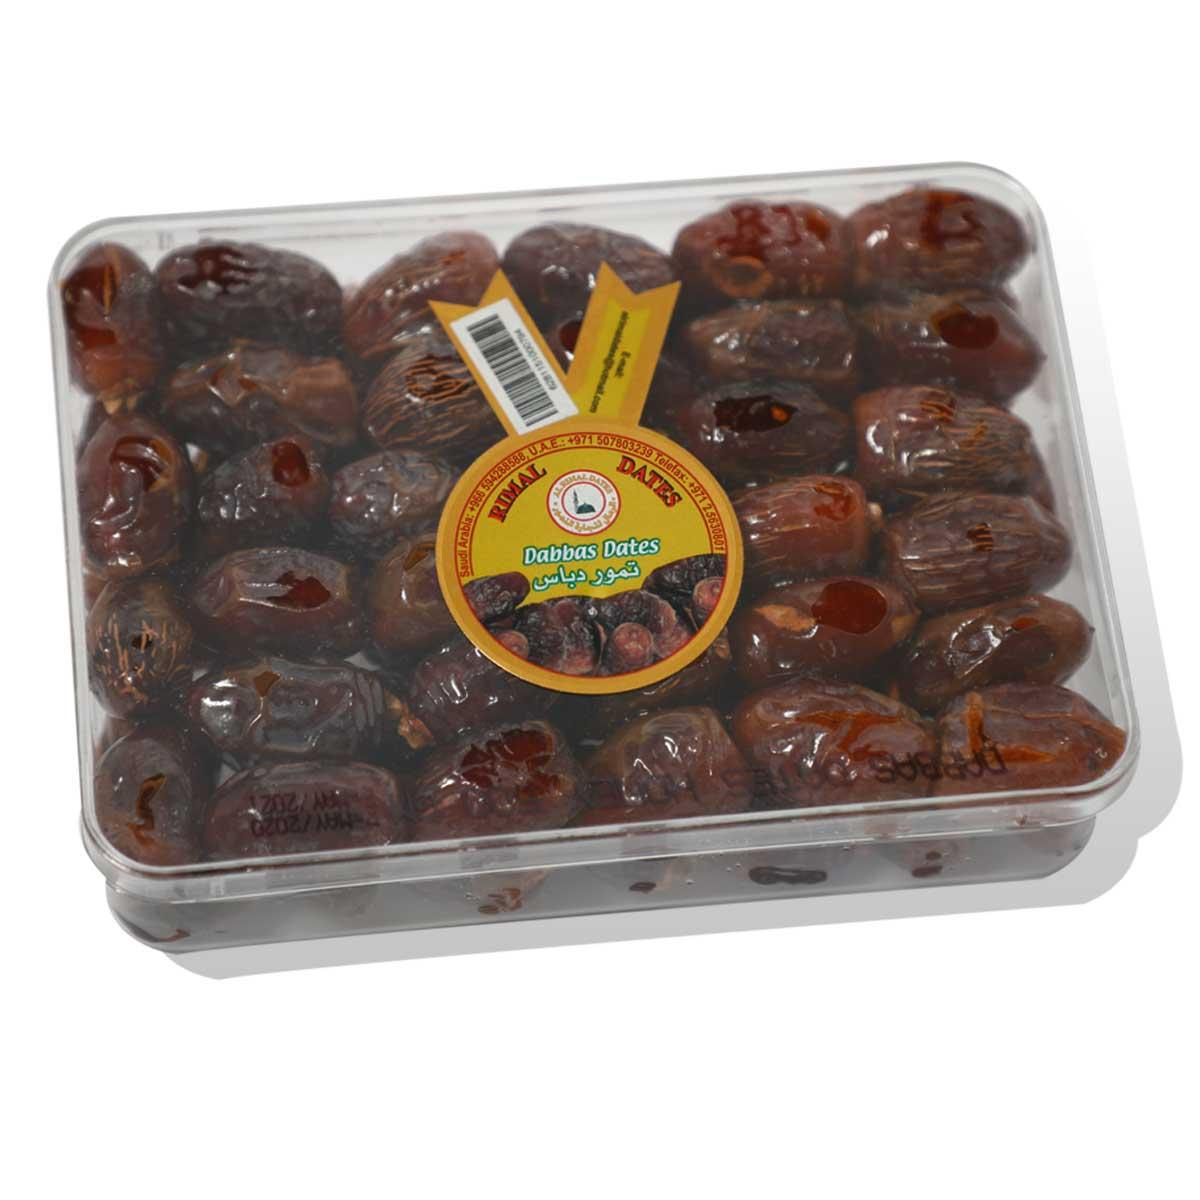 Dates Dabbas pack